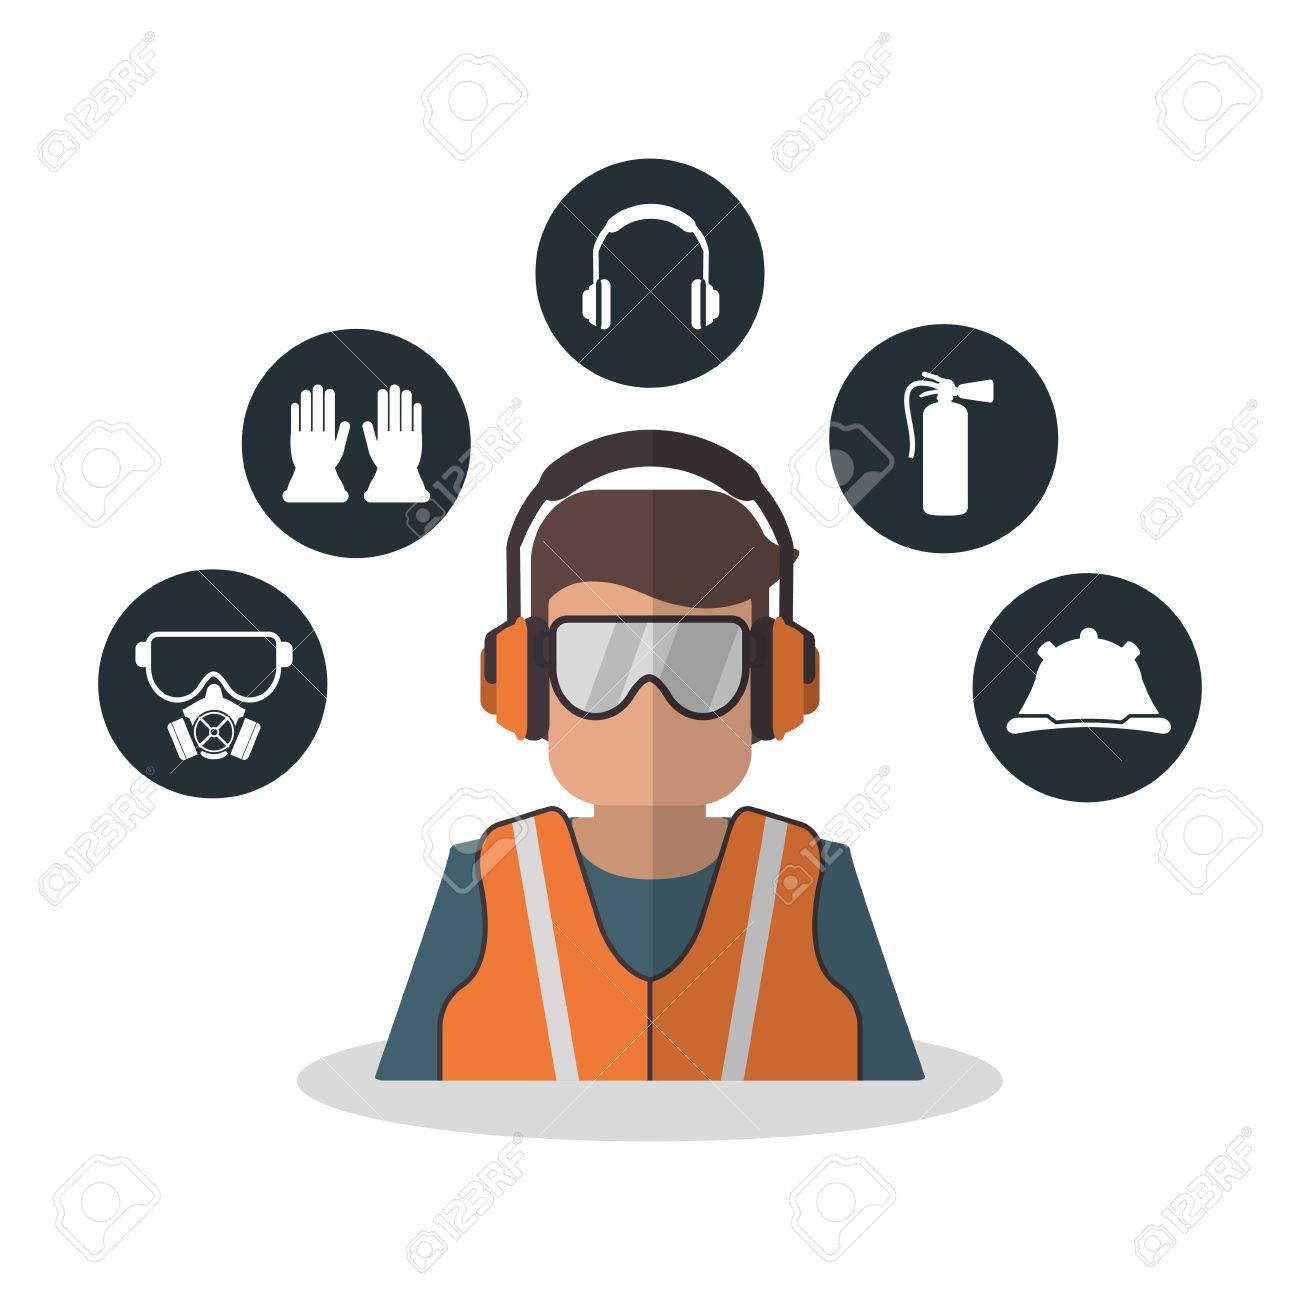 avatar worker with glasses icon industrial safety security and